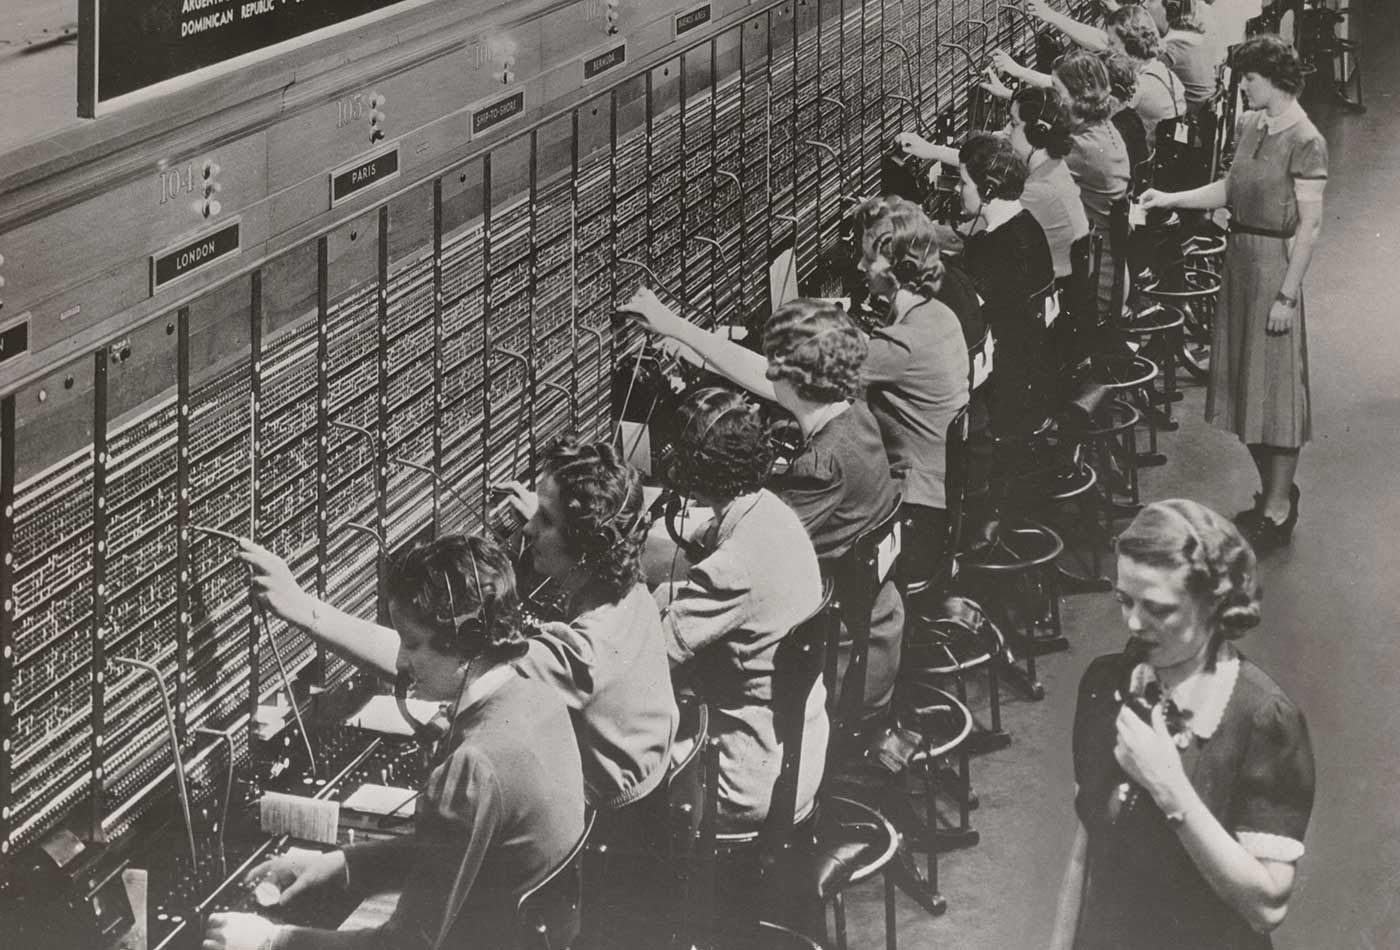 Photograph of Women Working at a Bell System Telephone Switchboard, circa 1945.